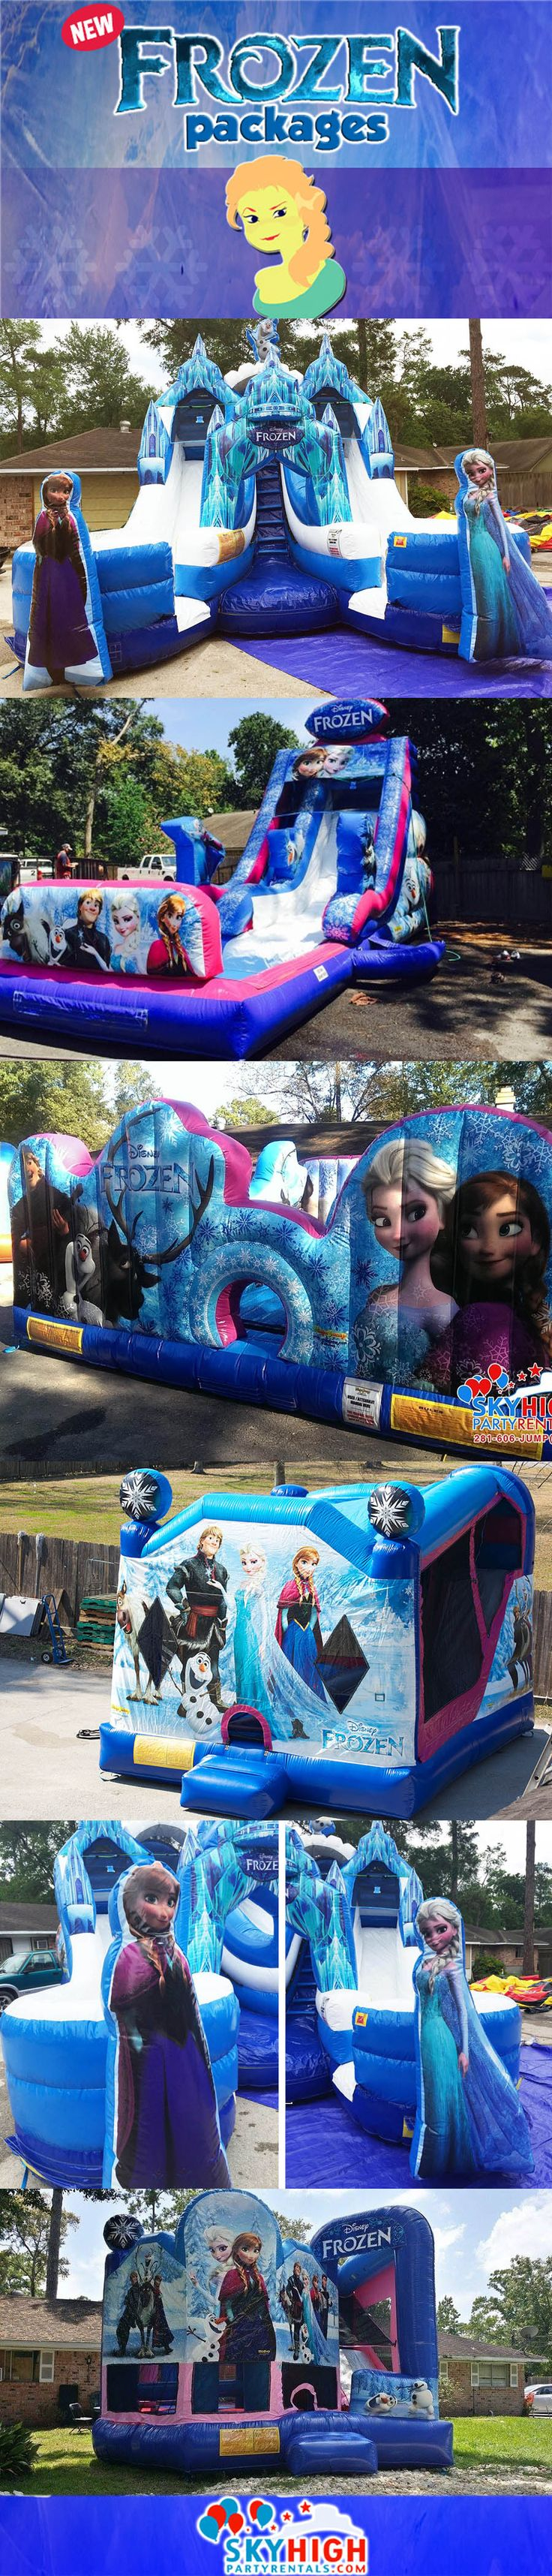 We carry the largest quantity of Frozen inflatable bounce house moonwalks in Houston, TX and surrounding cities. Call us at (281) 606-5867 to make a reservation or book online at the website link: https://www.skyhighpartyrentals.com/houston/frozen-party-ideas